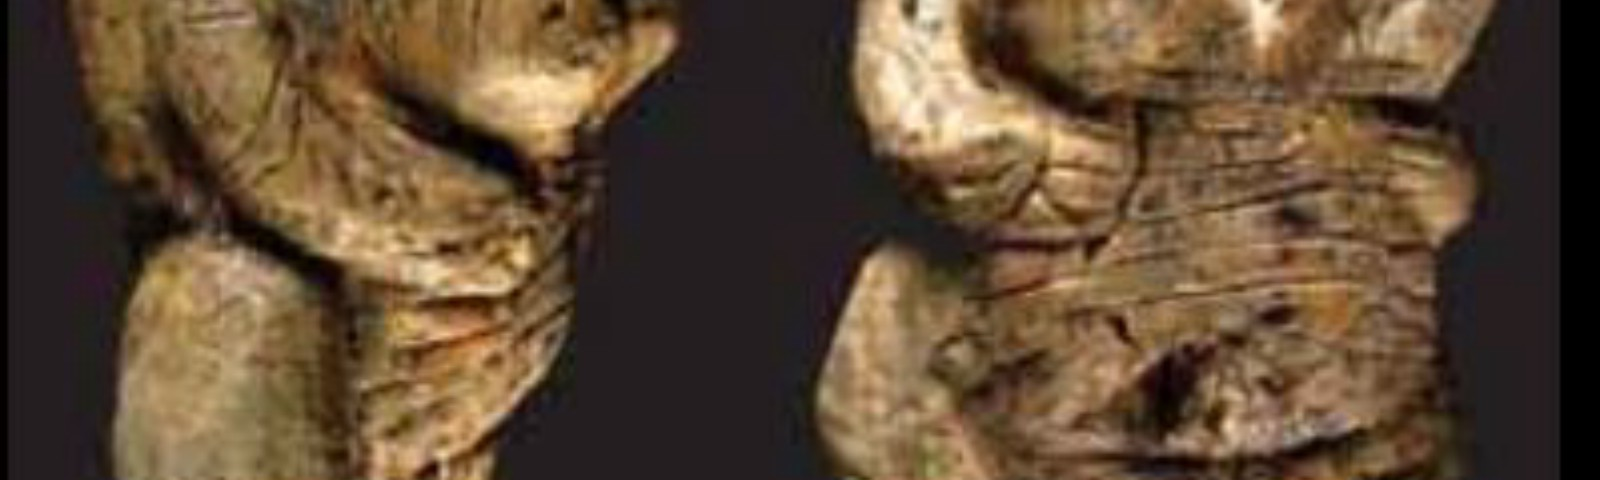 Figurine known as Venus of Hohle Fels with large breasts and exaggerated anatomy.